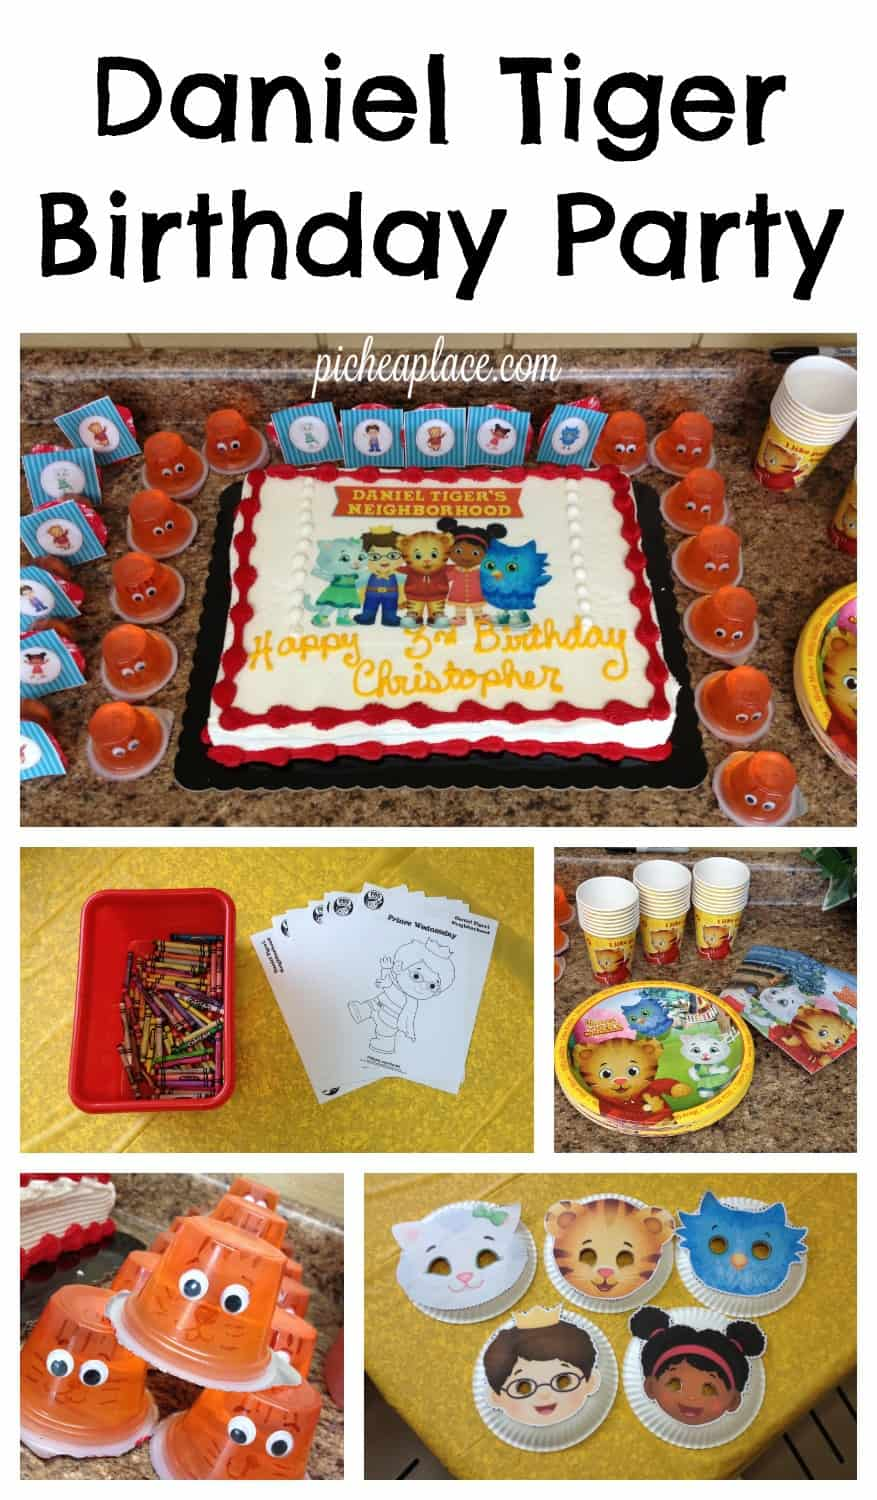   This Daniel Tiger birthday party was so much fun for the kids and super easy for this busy mom to throw together. Click through to the post to get ideas for Daniel Tiger themed food, crafts, activities, and more!